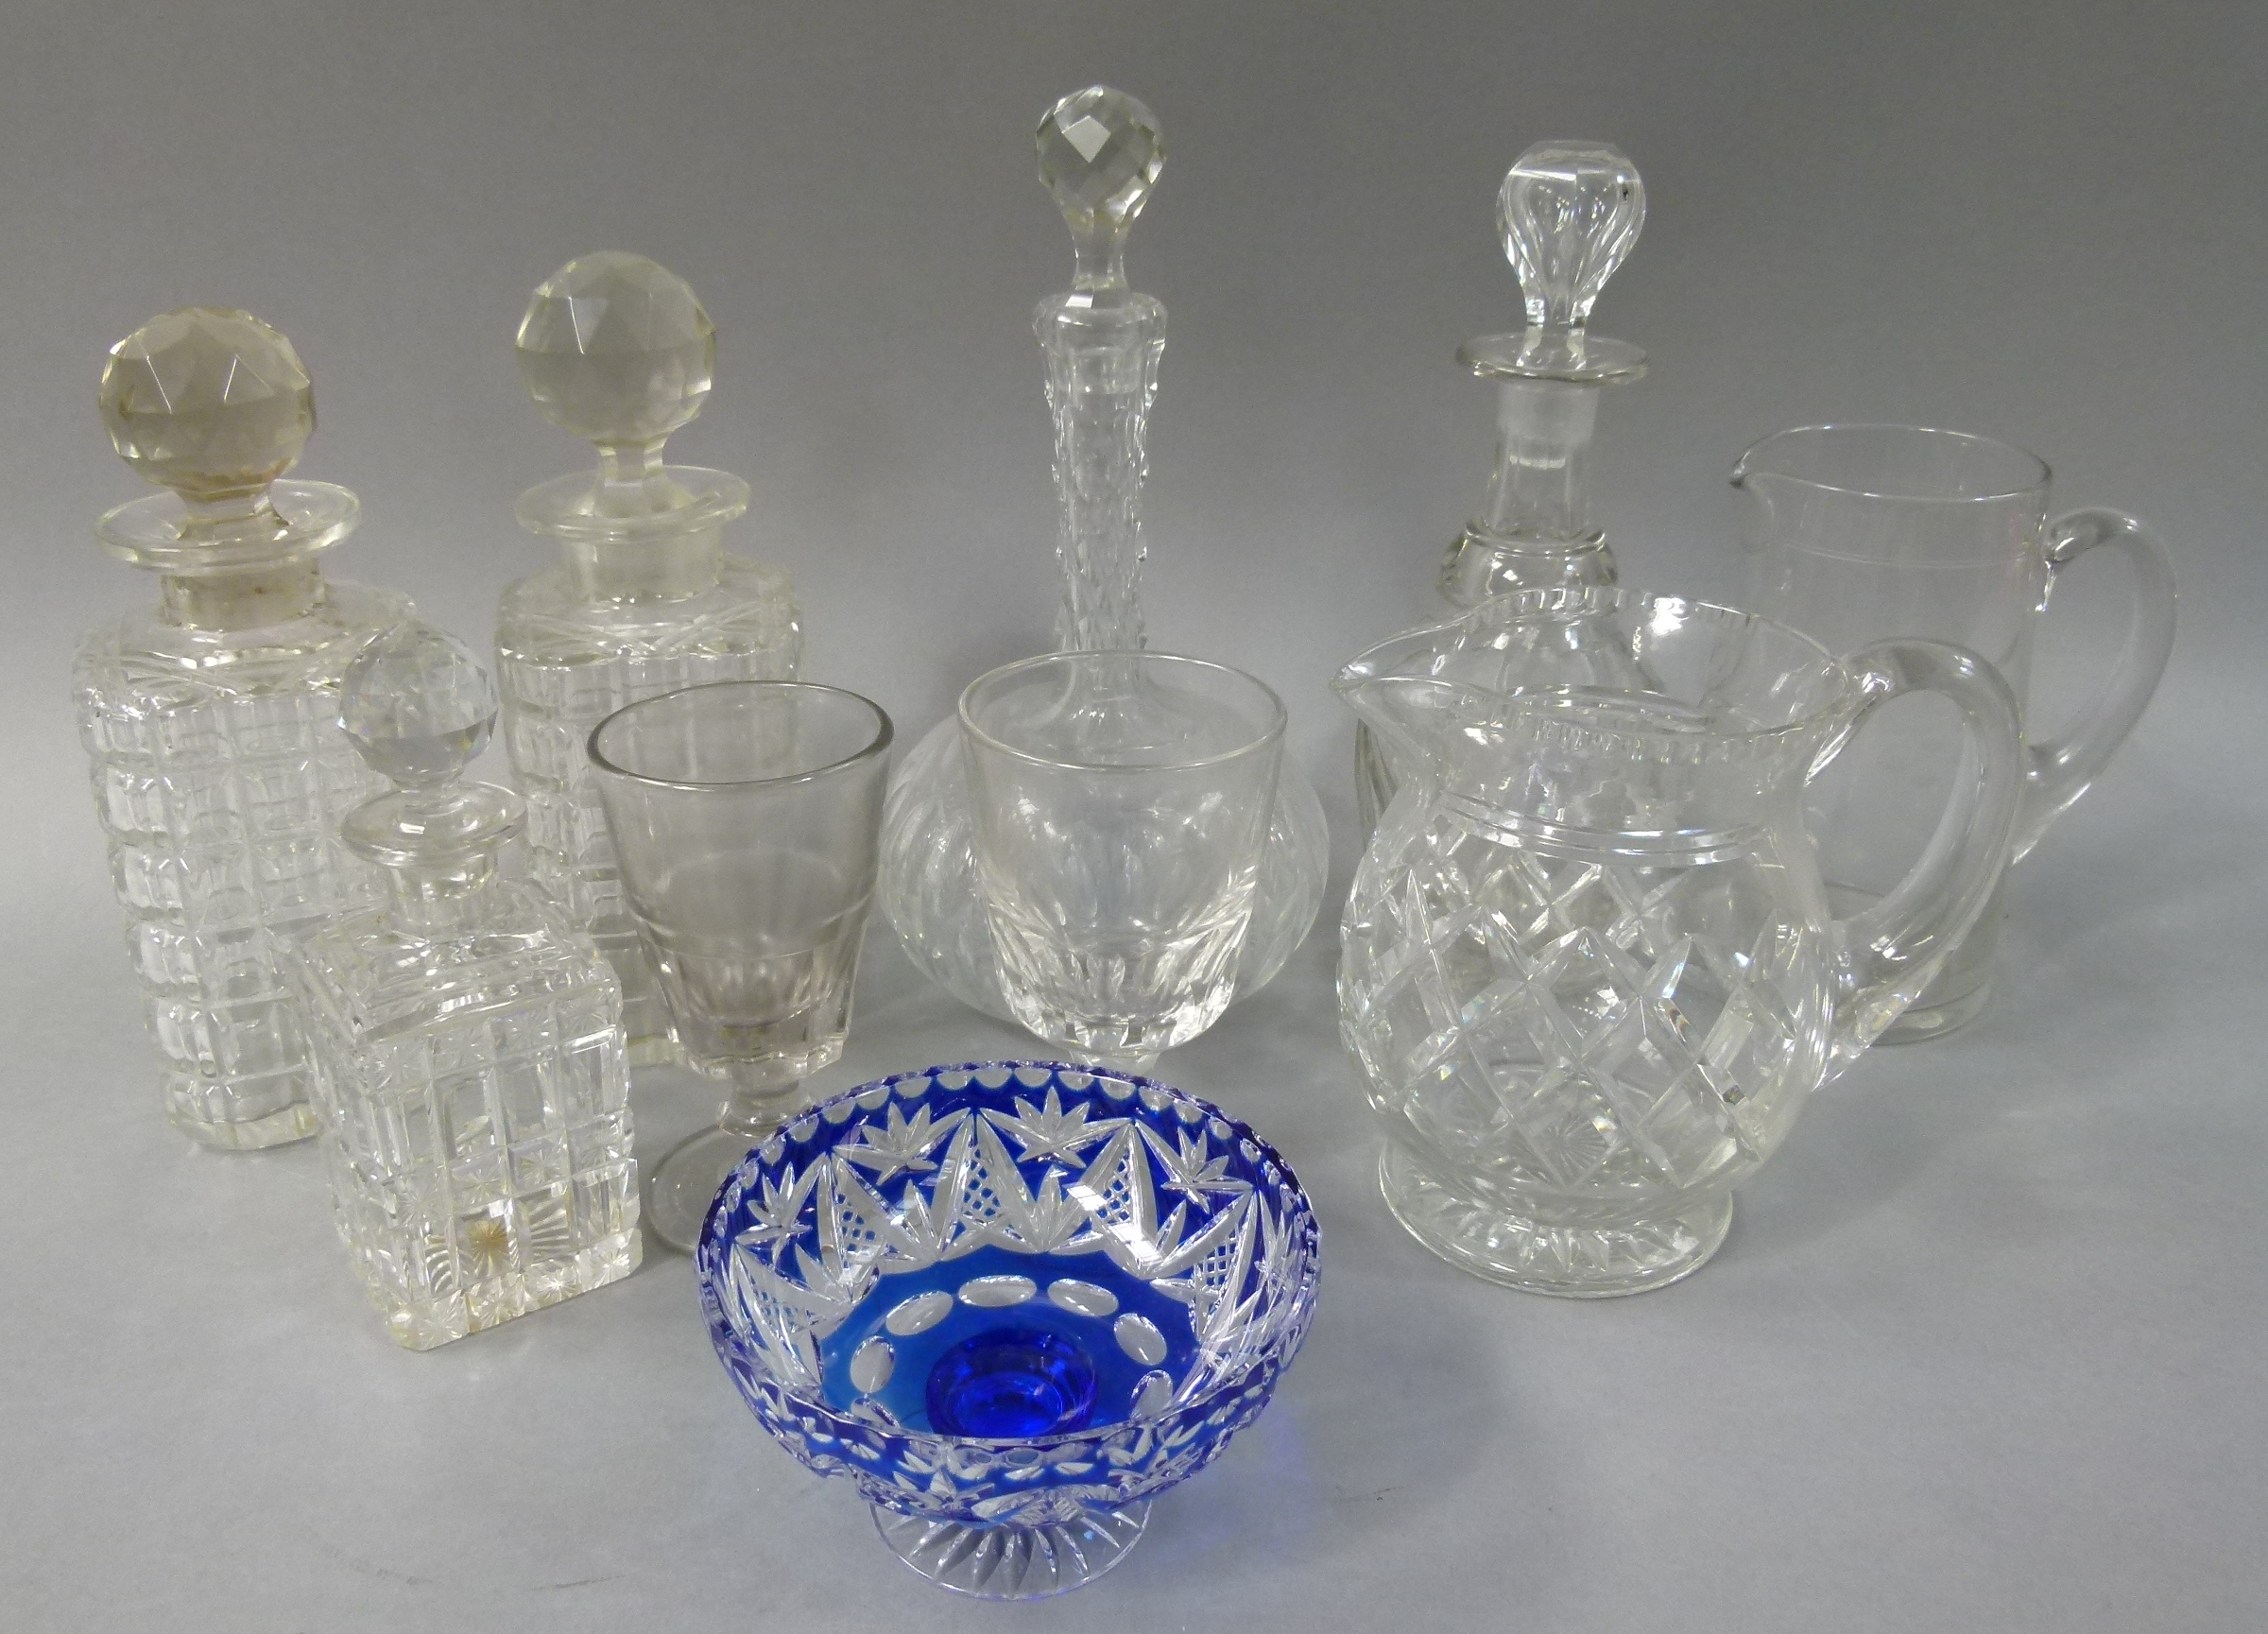 Lot 137 - A pair of decanters with faceted stoppers, two further decanters and a small decanter of square